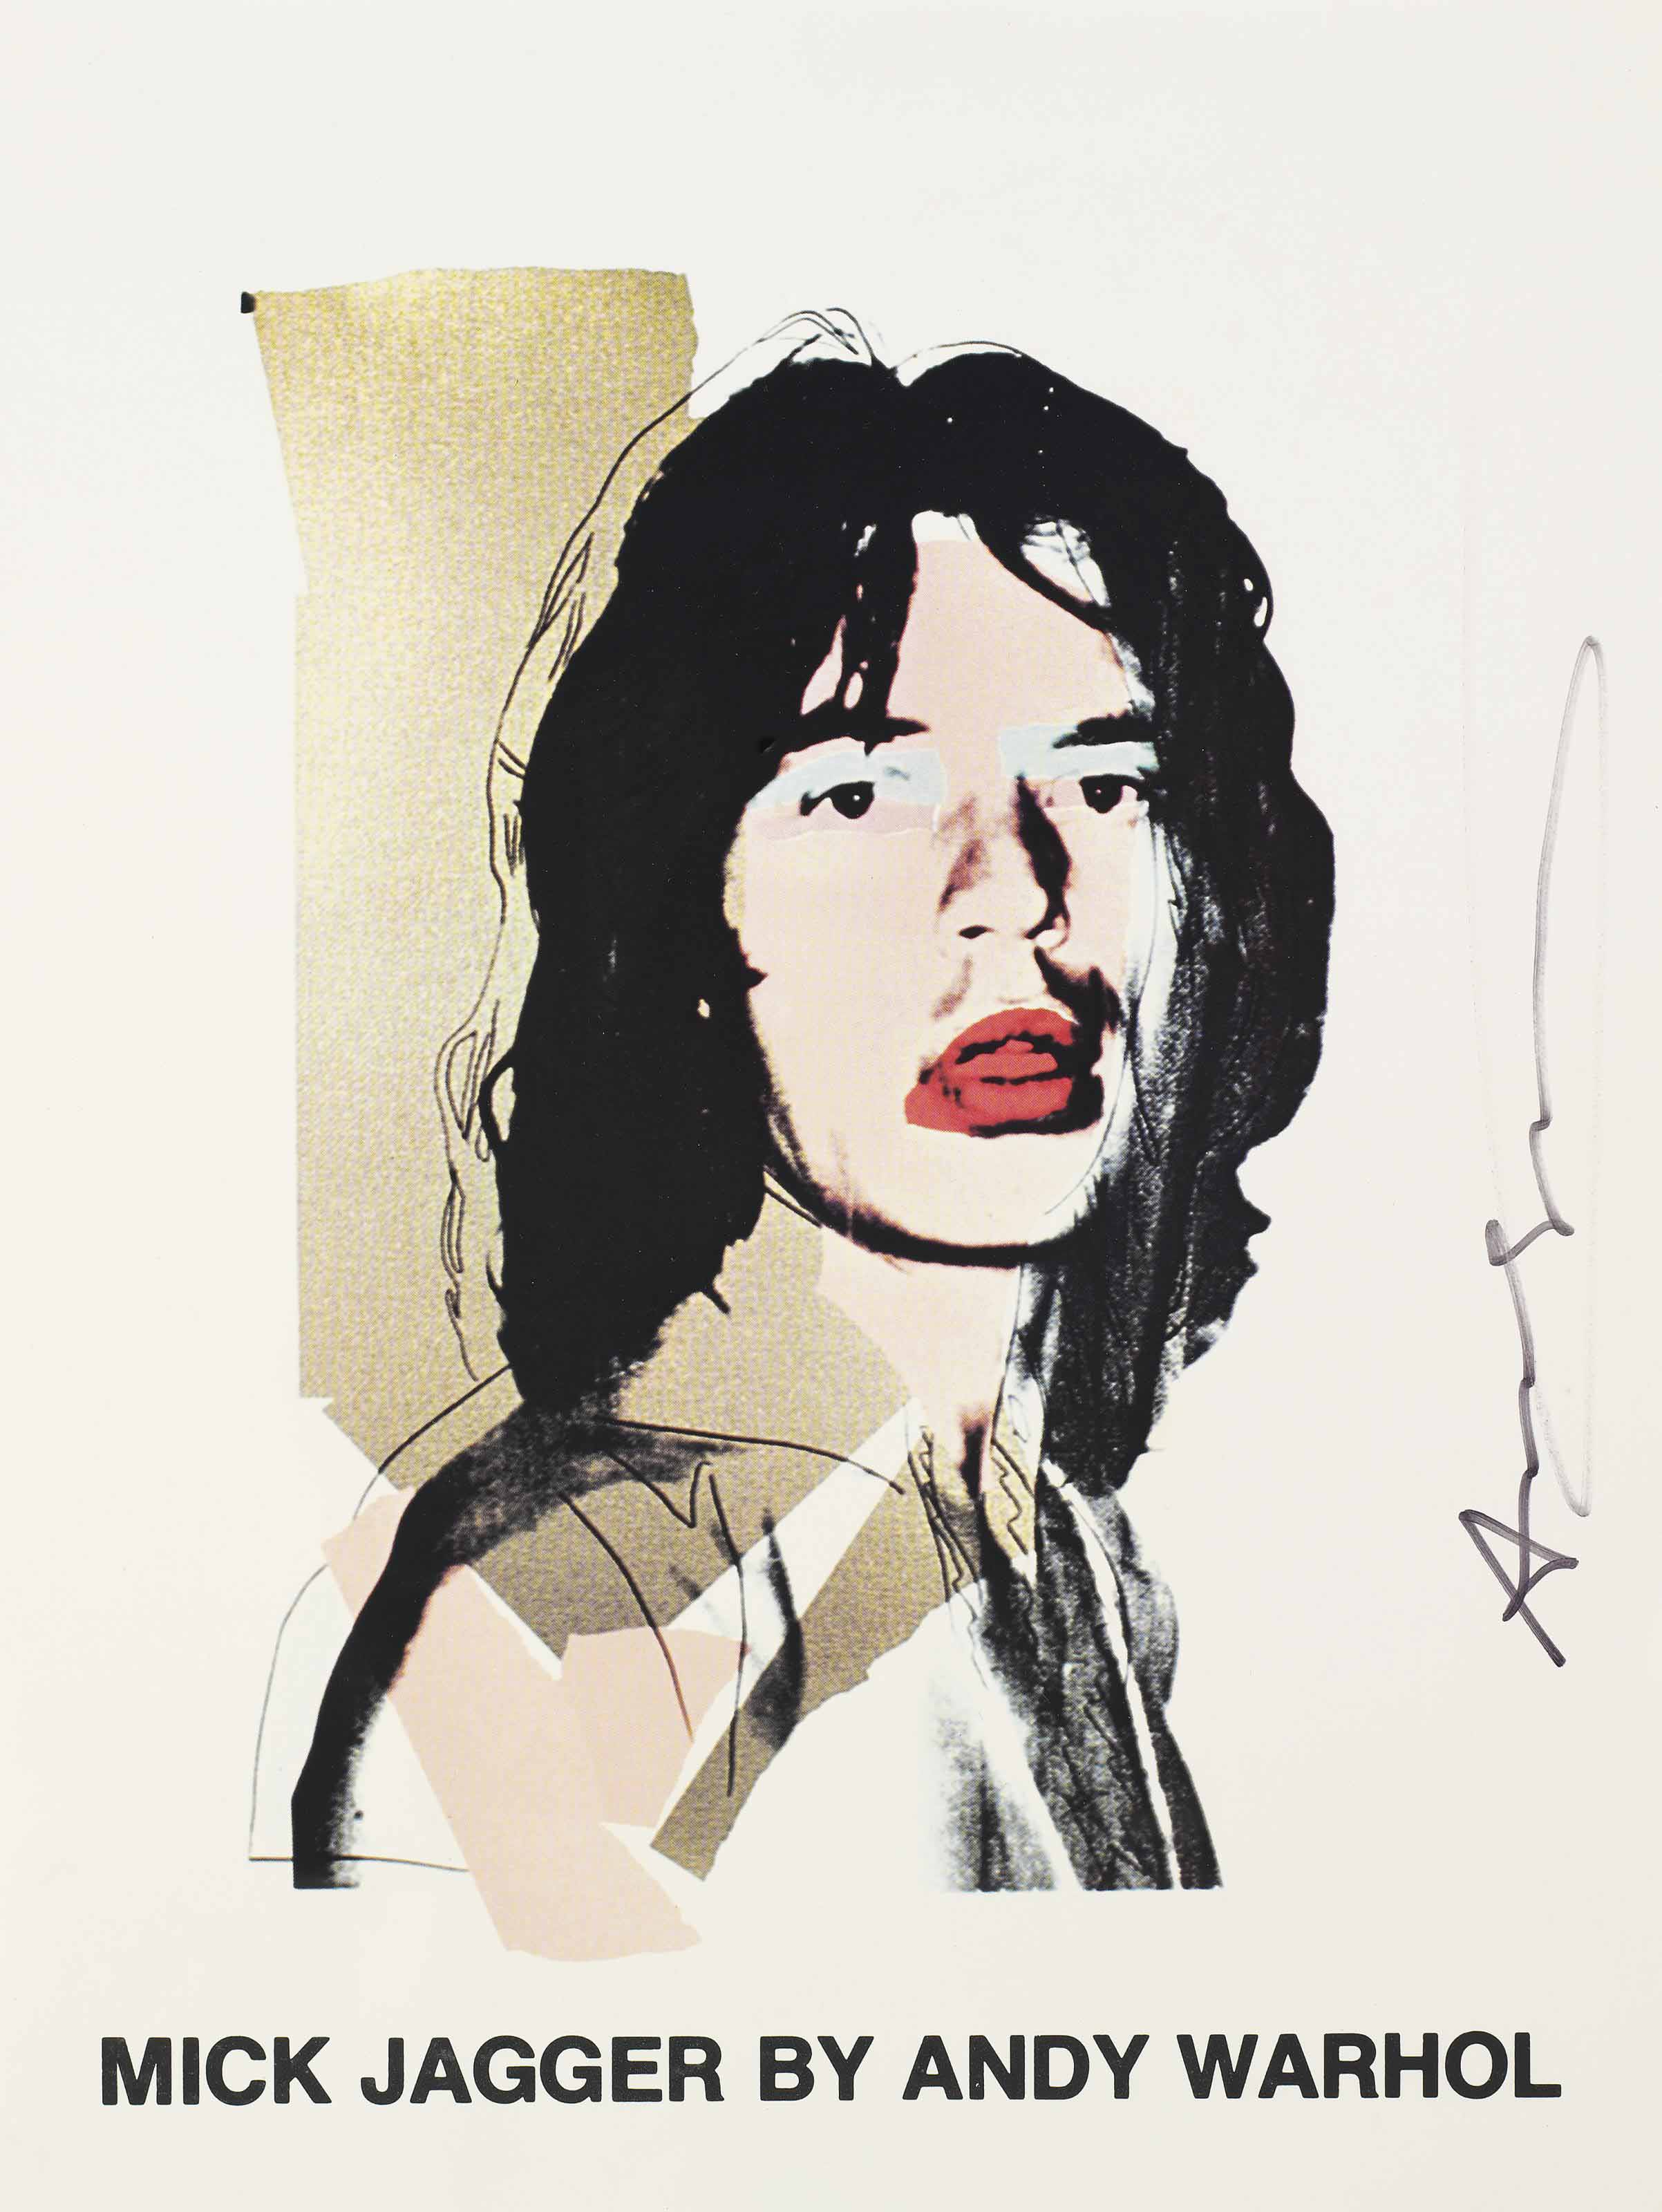 Andy Warhol/The Rolling Stones